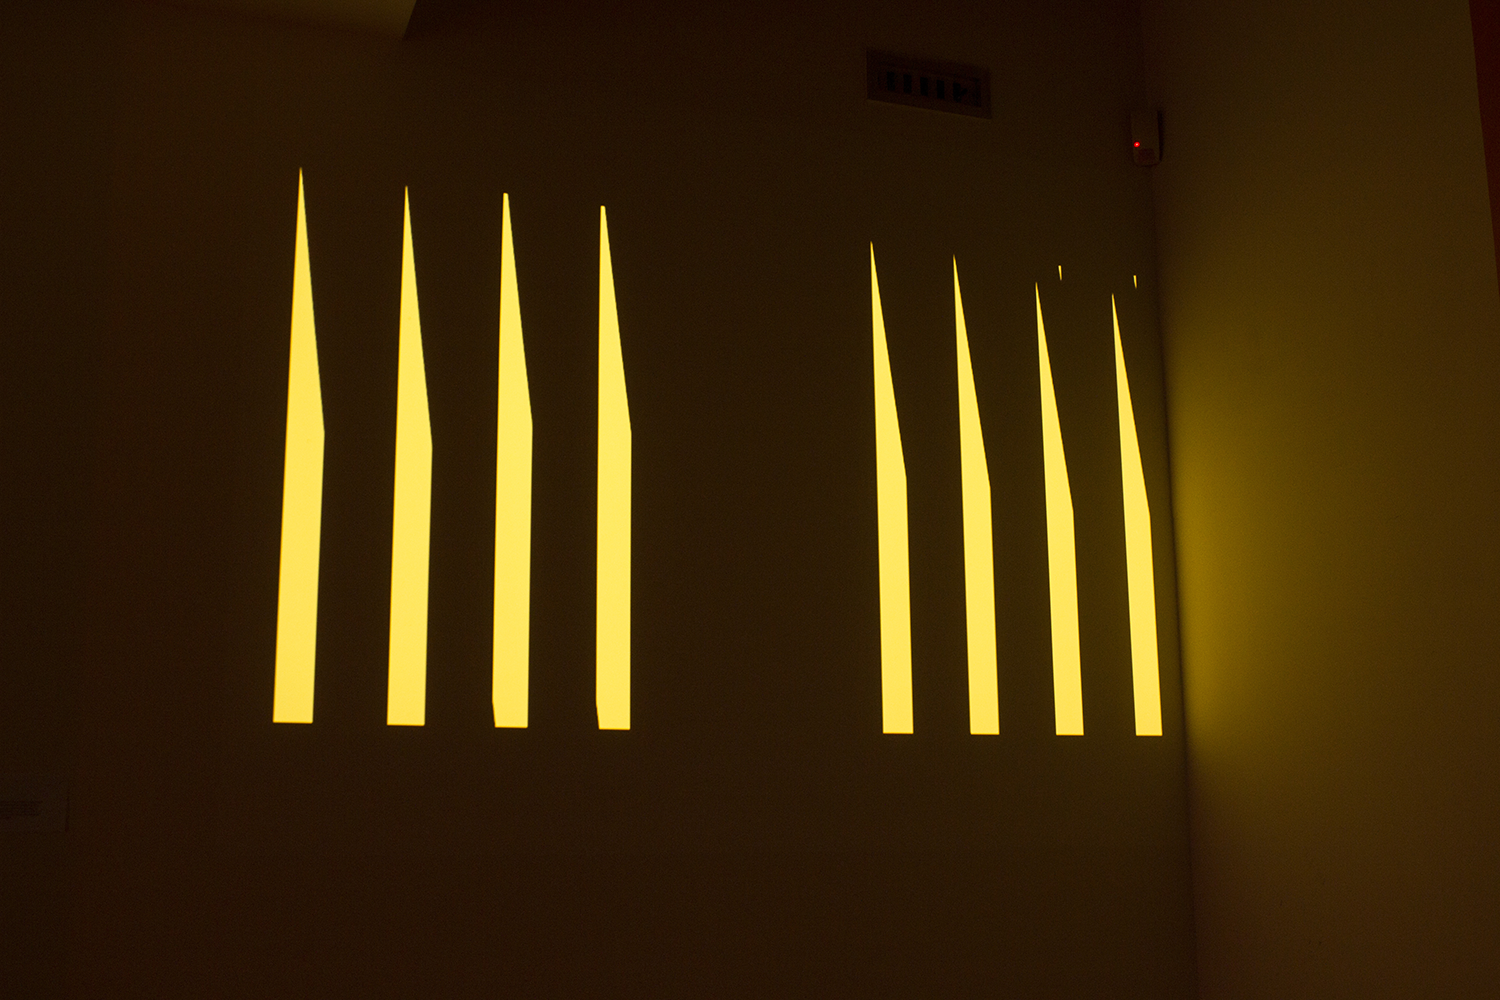 Projection of yellow geometric forms